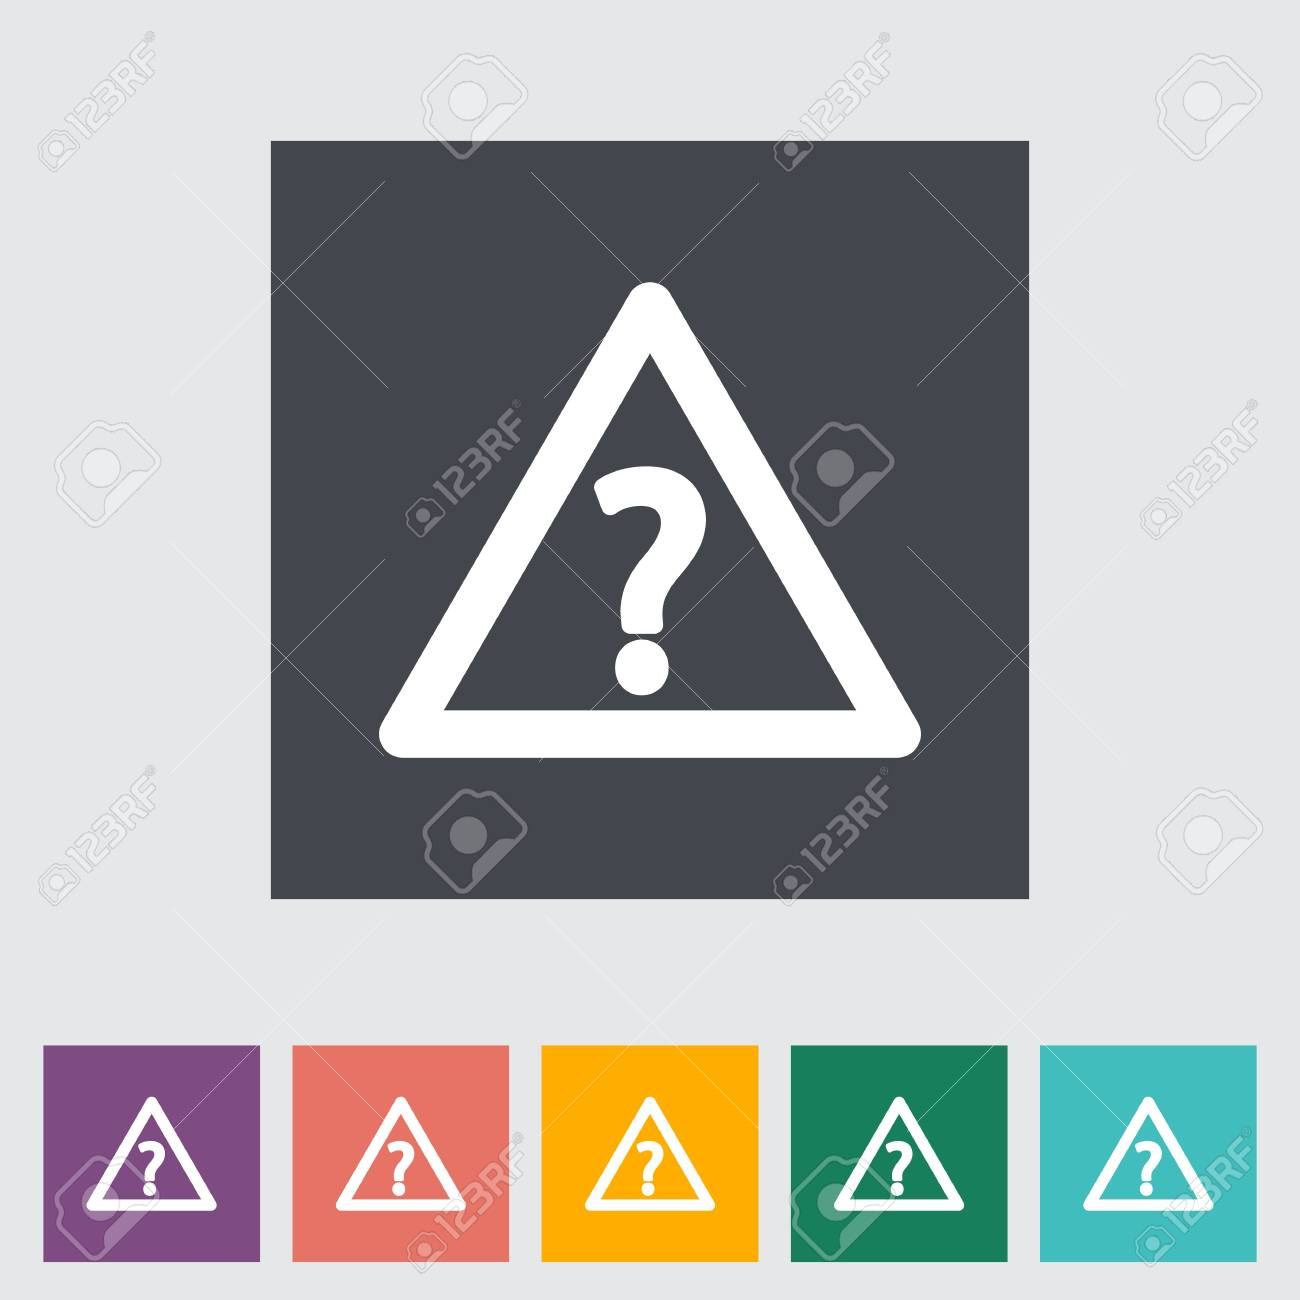 Question flat single icon. Vector illustration. Stock Vector - 21026074